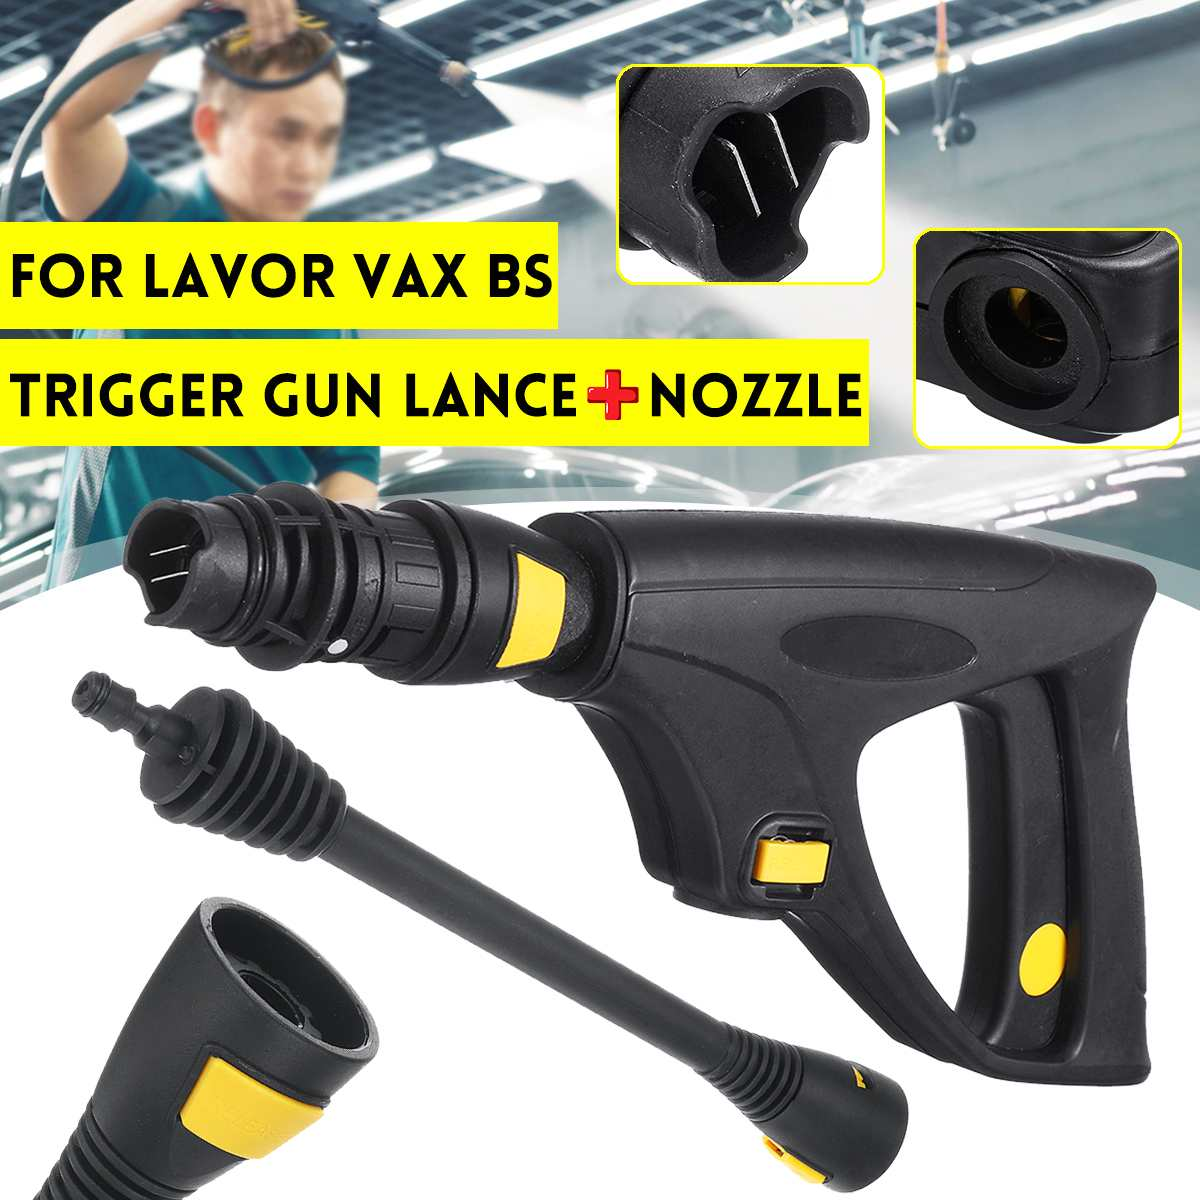 Pressure Washer Trigger Guns Lance + Nozzle 160Bar/16Mpa For LAVOR VAX BS